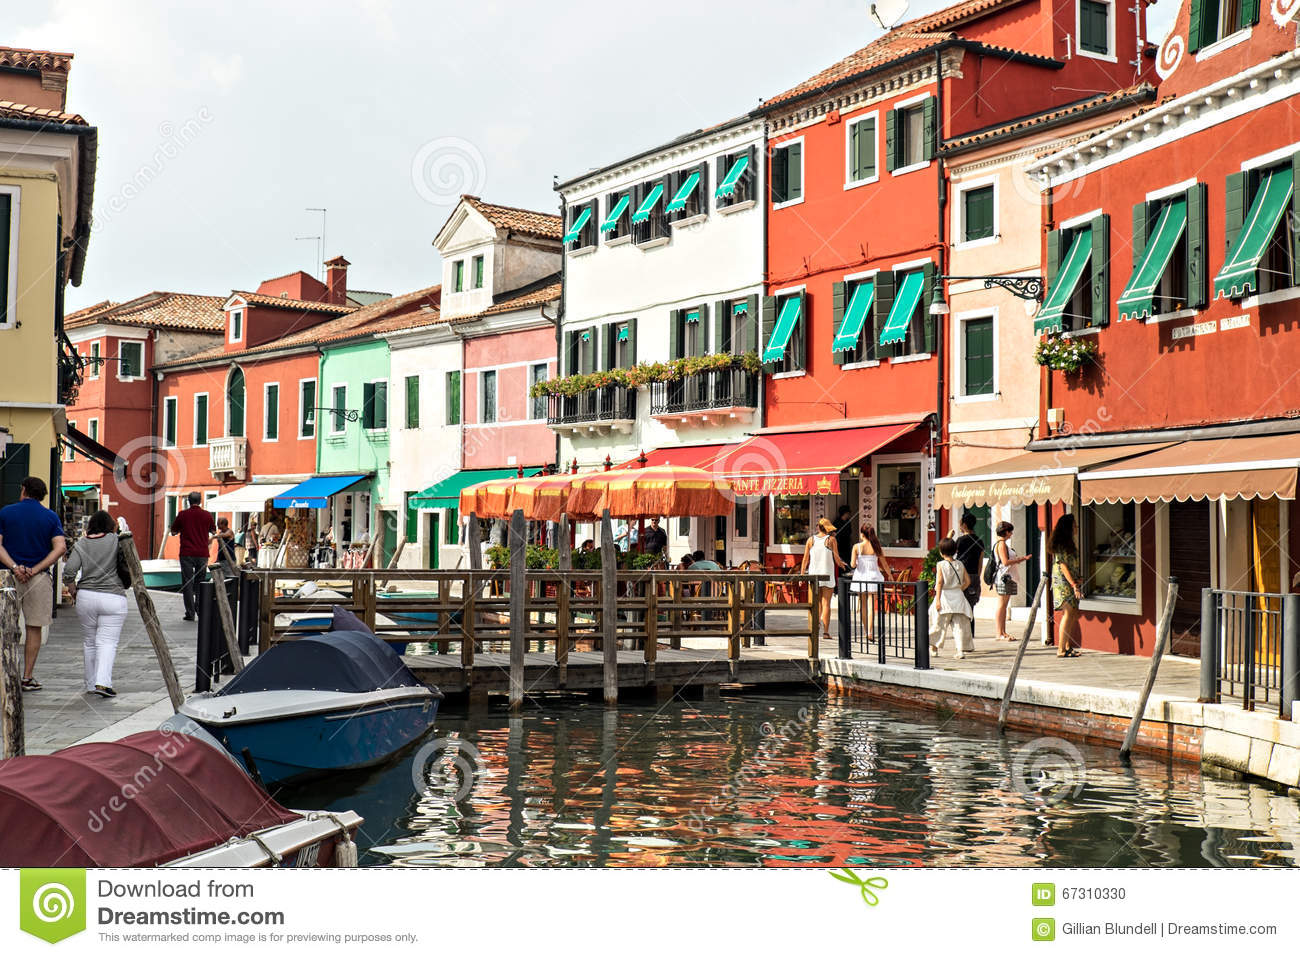 Colorful burano italy burano tourism - Colourful Colorful Houses And Shops Alongside Canal On Island Of Burano In Venetian Lagoon